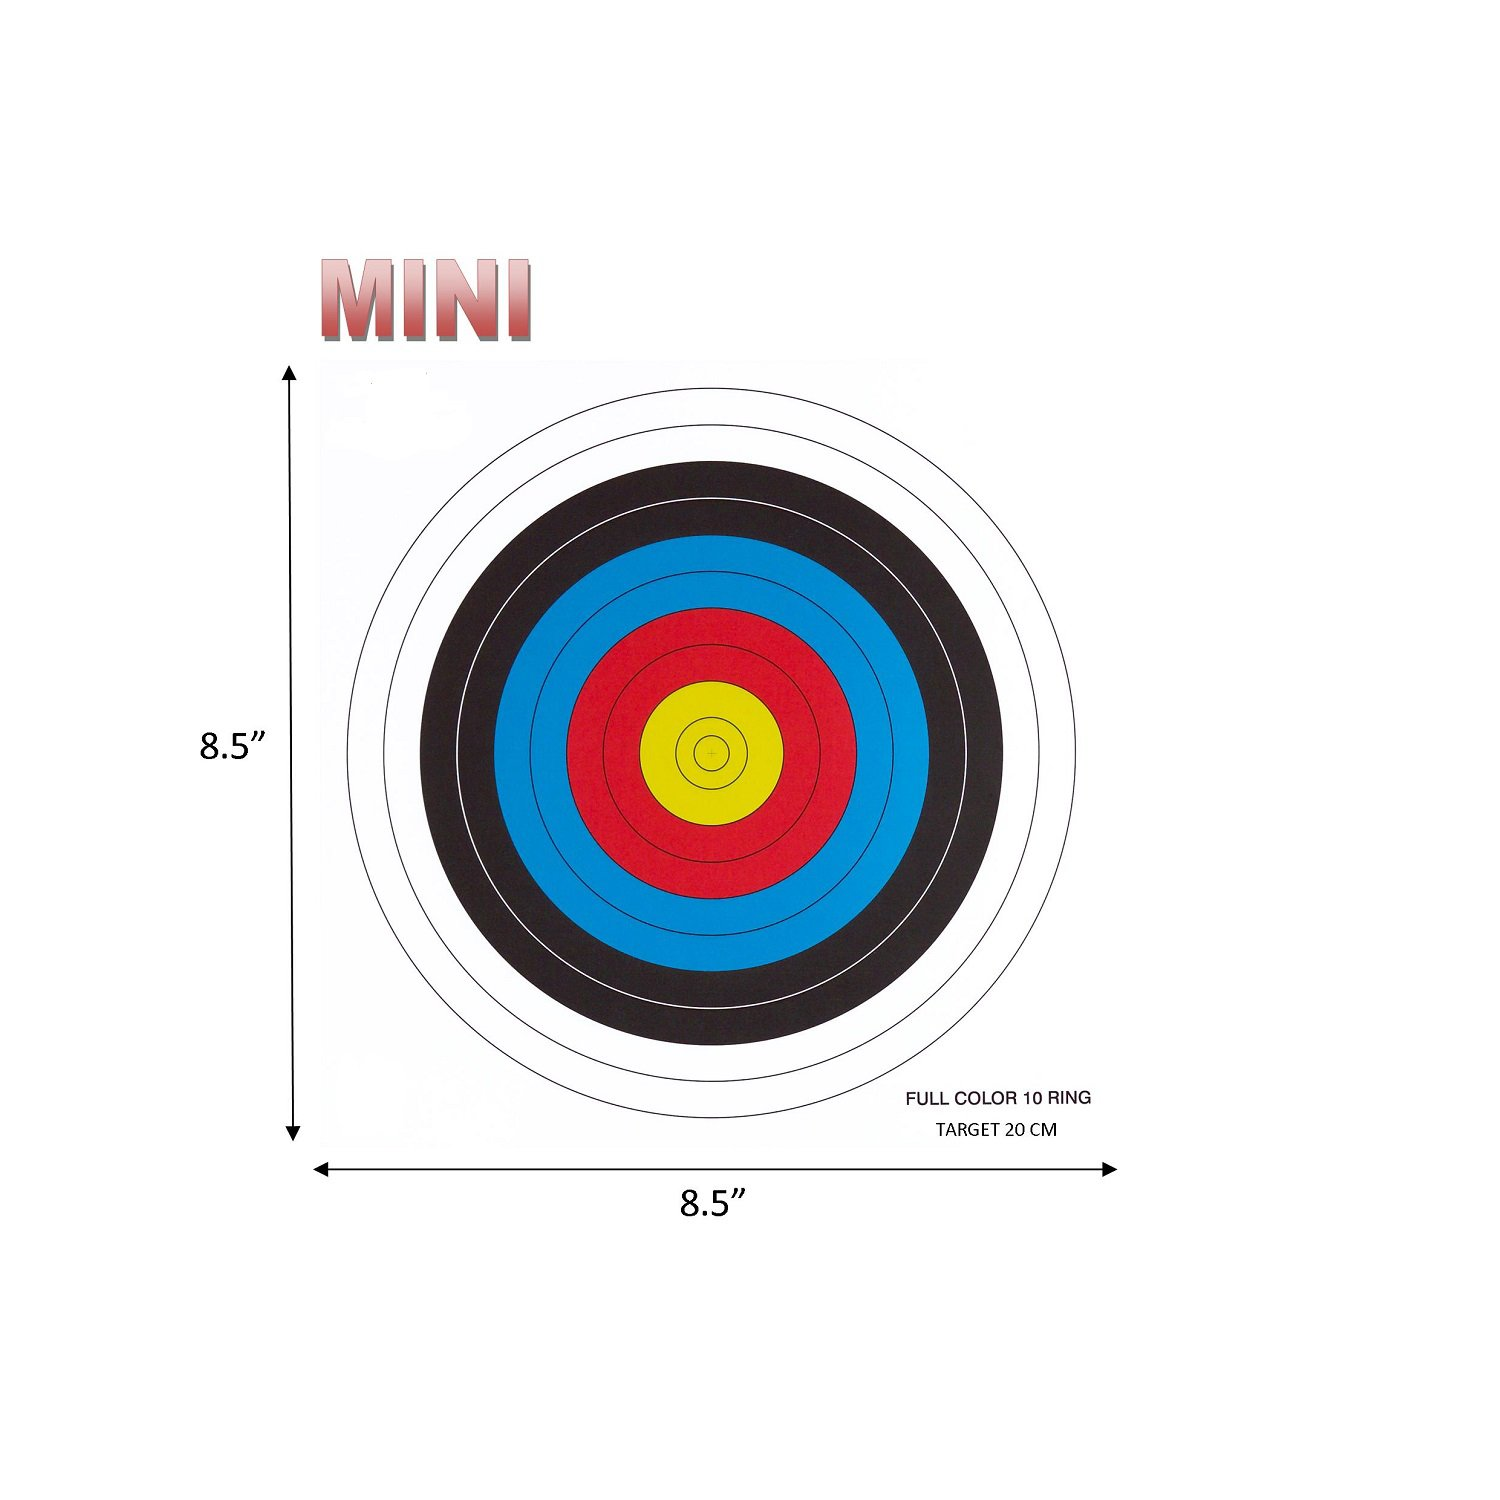 .30-06 Outdoors 10 Ring Mini Paper Target (100 Count), Red/Blue/Yellow